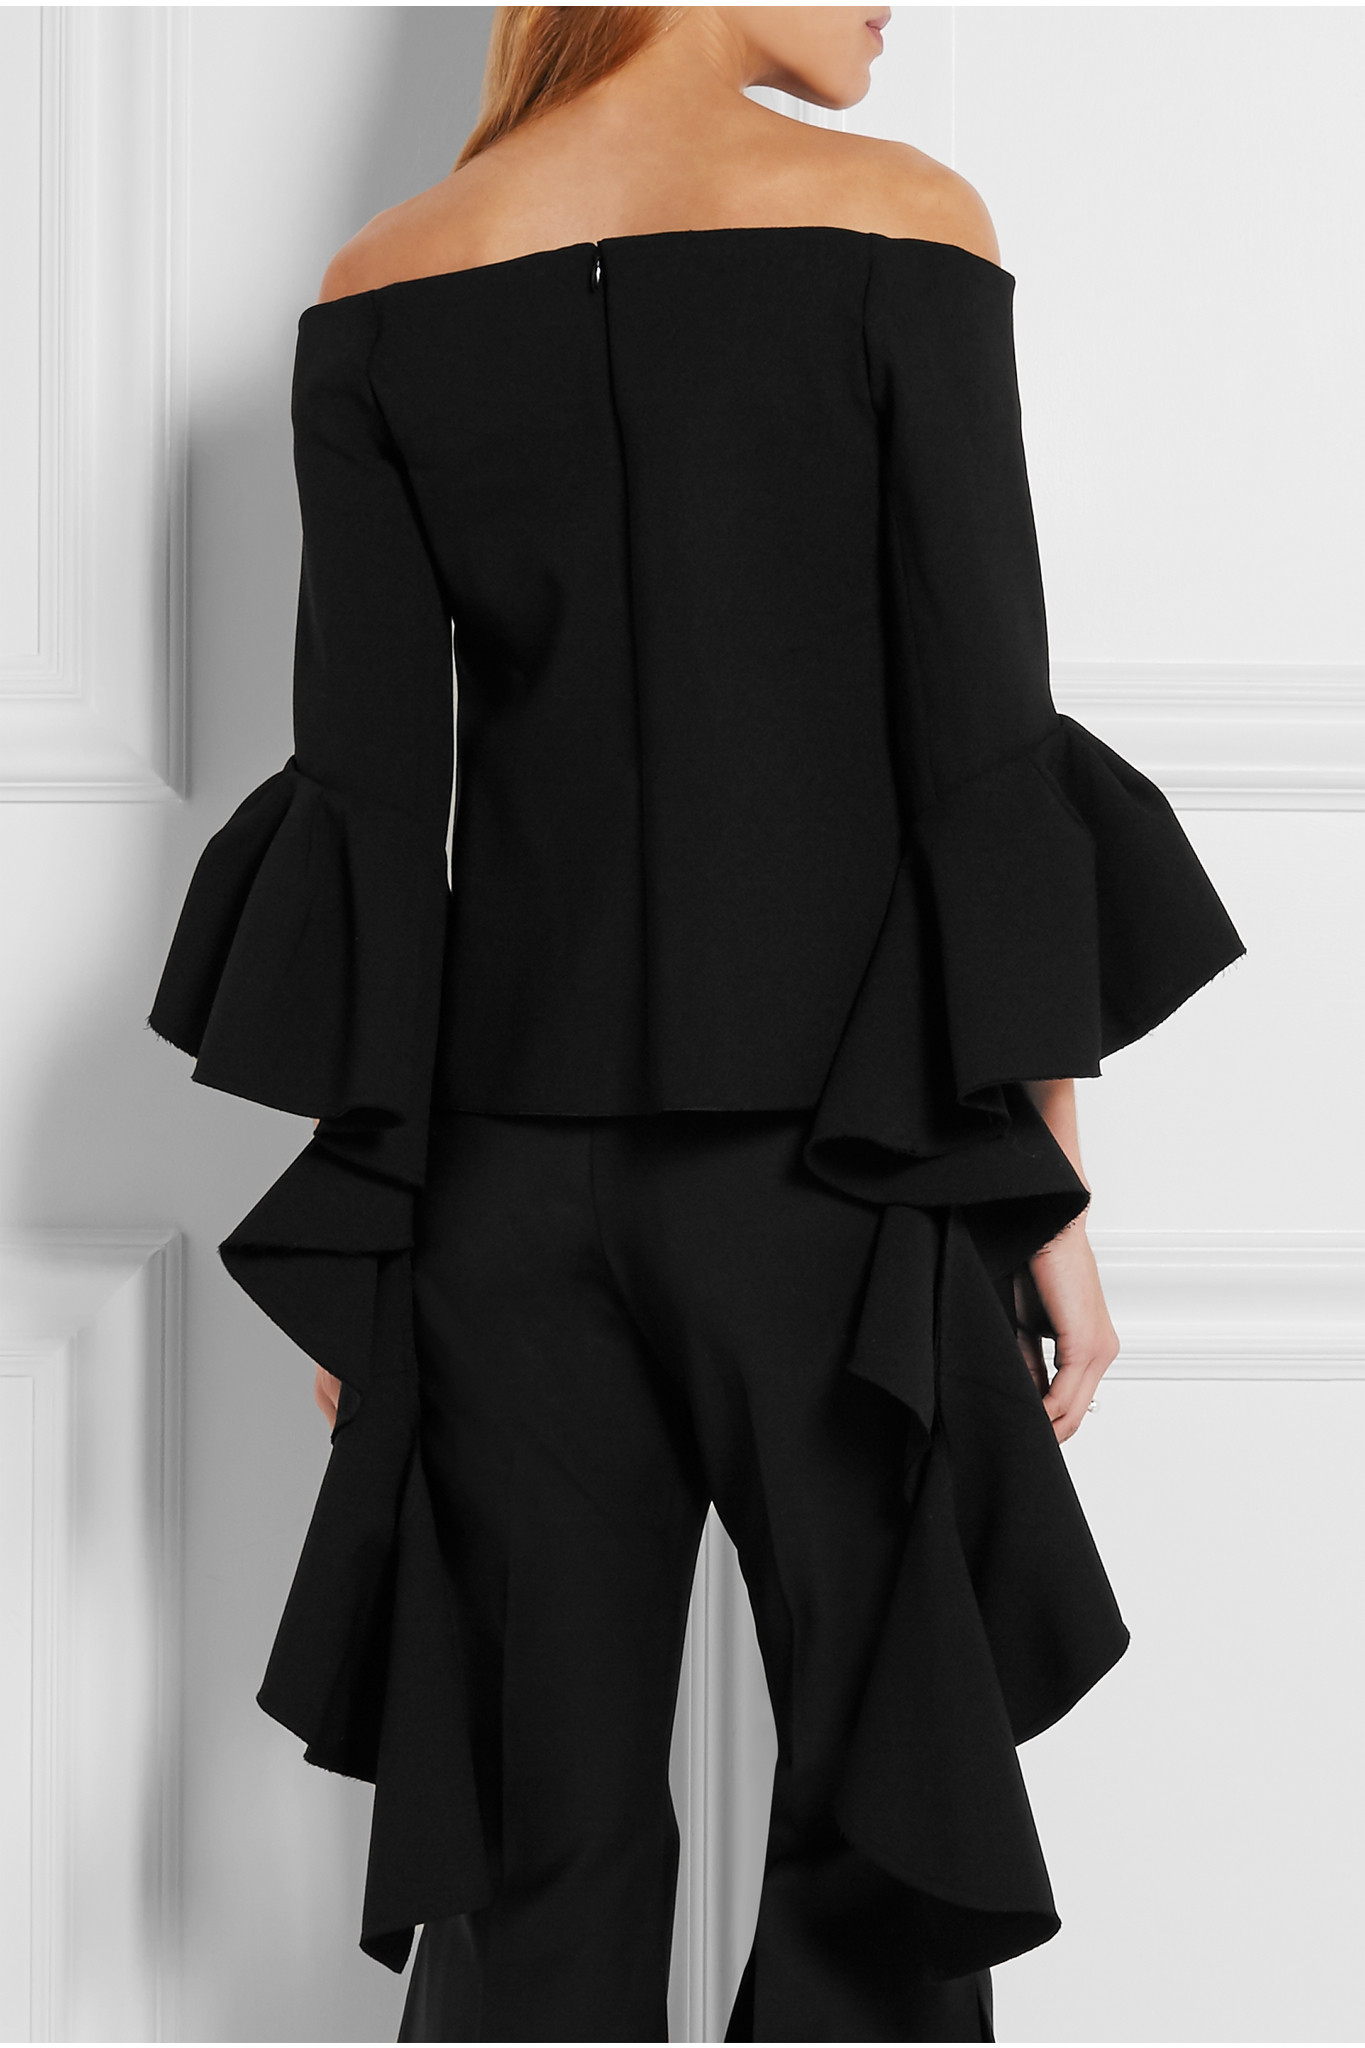 Cheap Sale For Nice Low Shipping Fee Sale Online Ellery Woman Cold-shoulder Ruffled Crepe-satin Top Black Size 4 Ellery 3aWIjXS3b